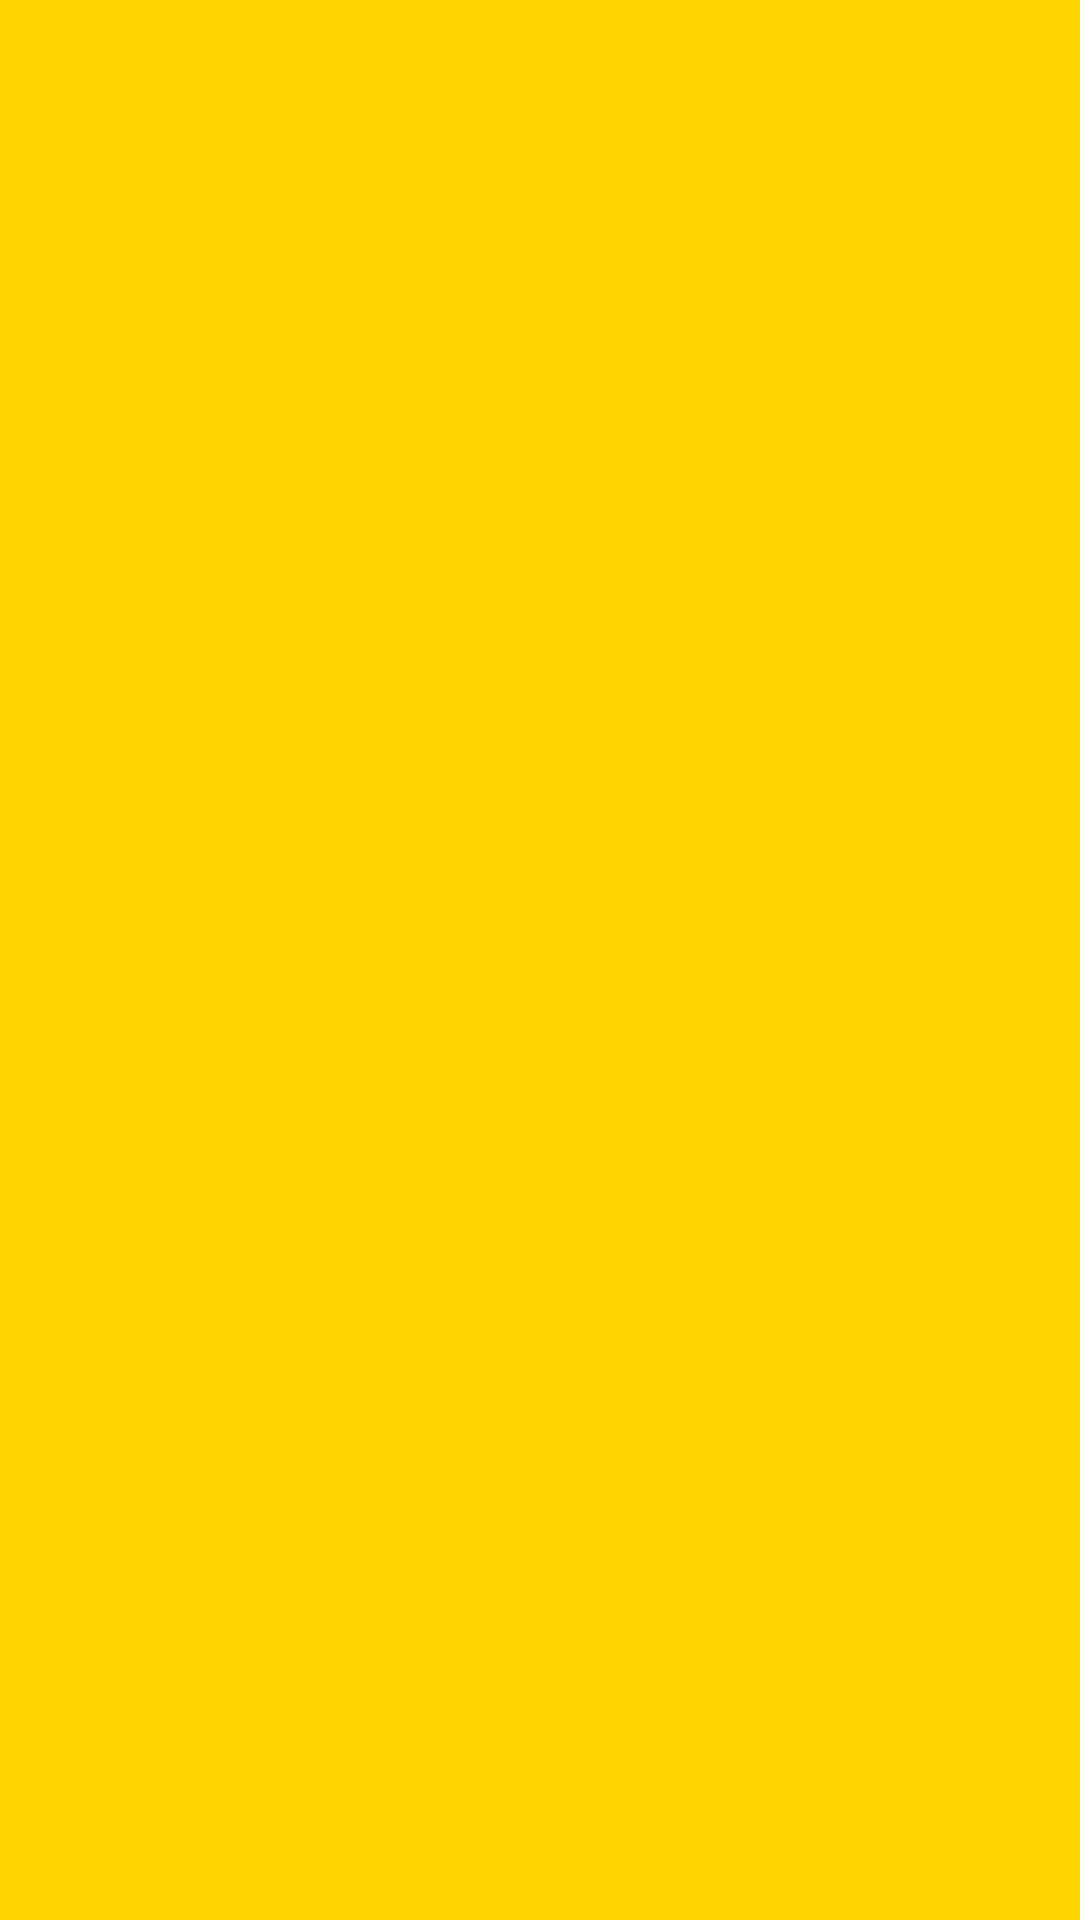 1080x1920 Cyber Yellow Solid Color Background